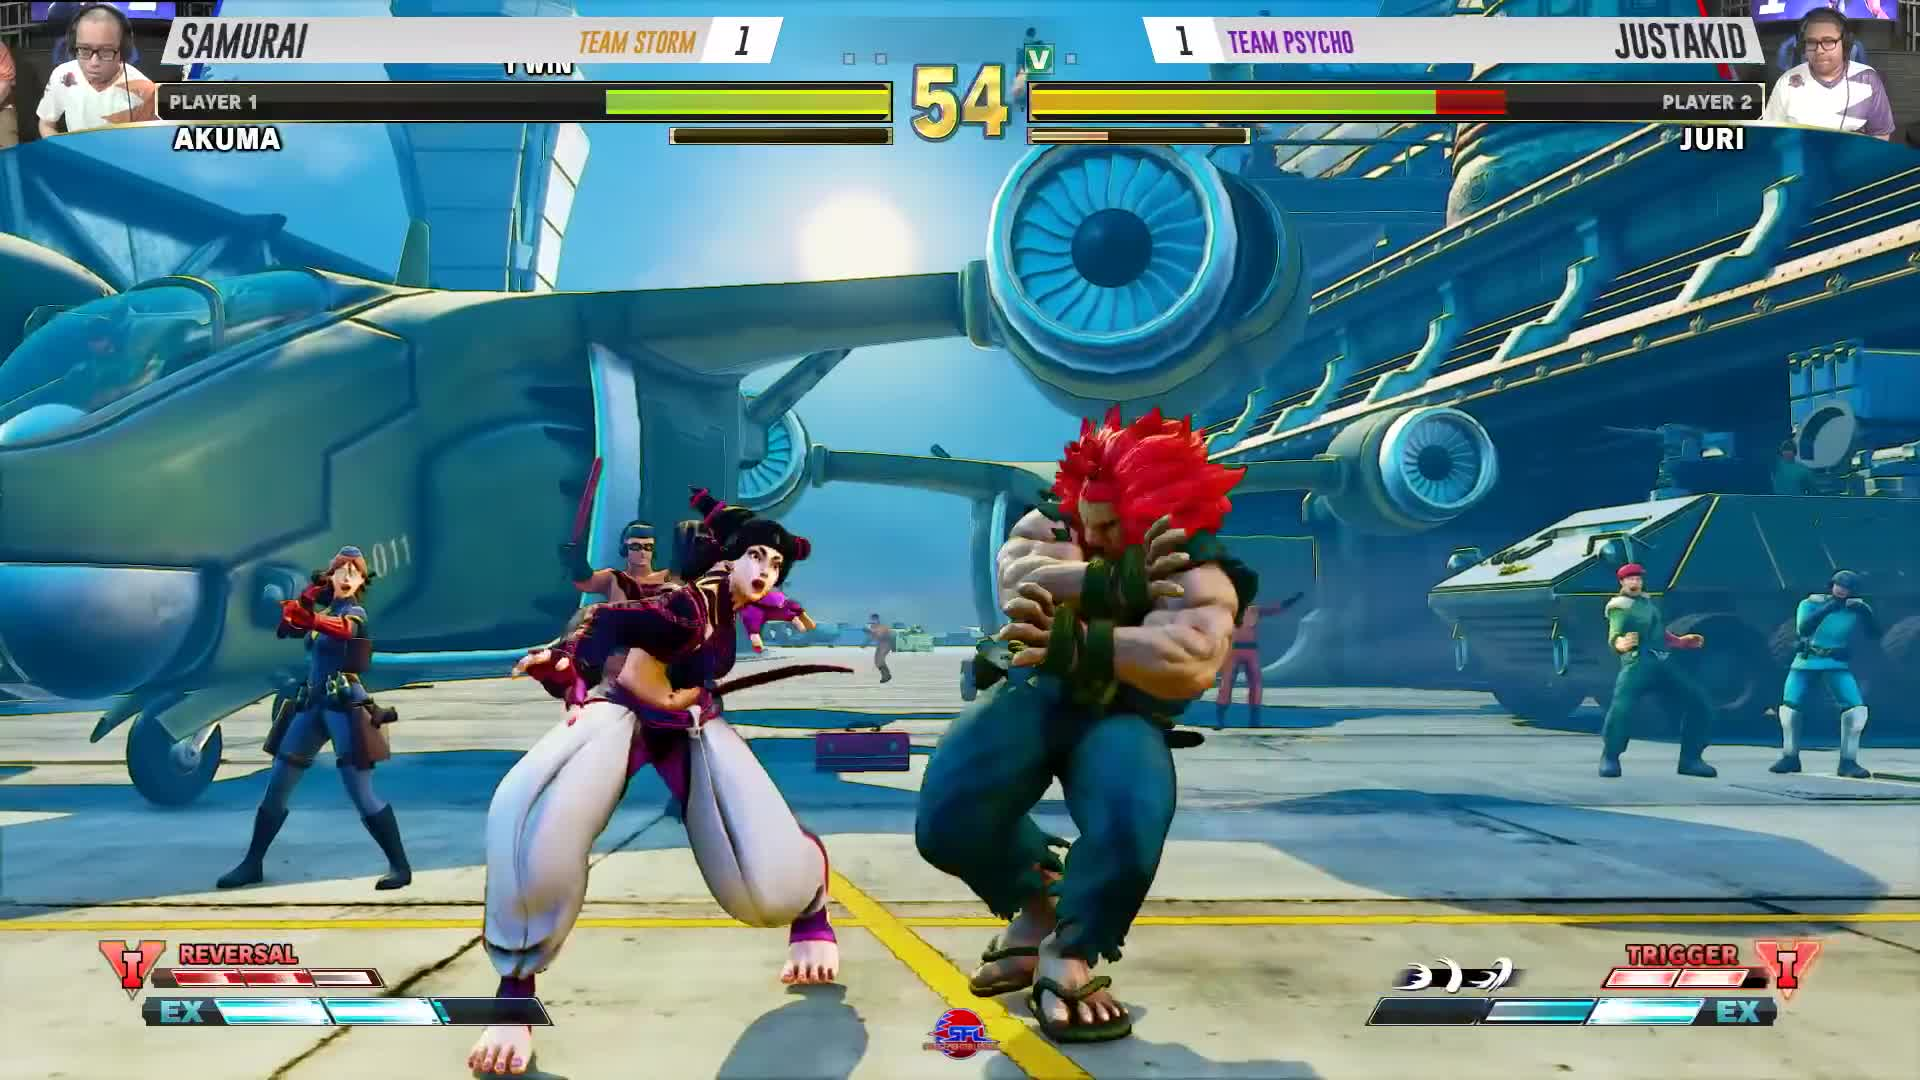 capcom, capcom pro tour, cpt, draft, esports, justin wong, jwong, street fighter, street fighter V, street fighter league, STREET FIGHTER LEAGUE: Pro-US 2019 - Week 2 – Fight! GIFs